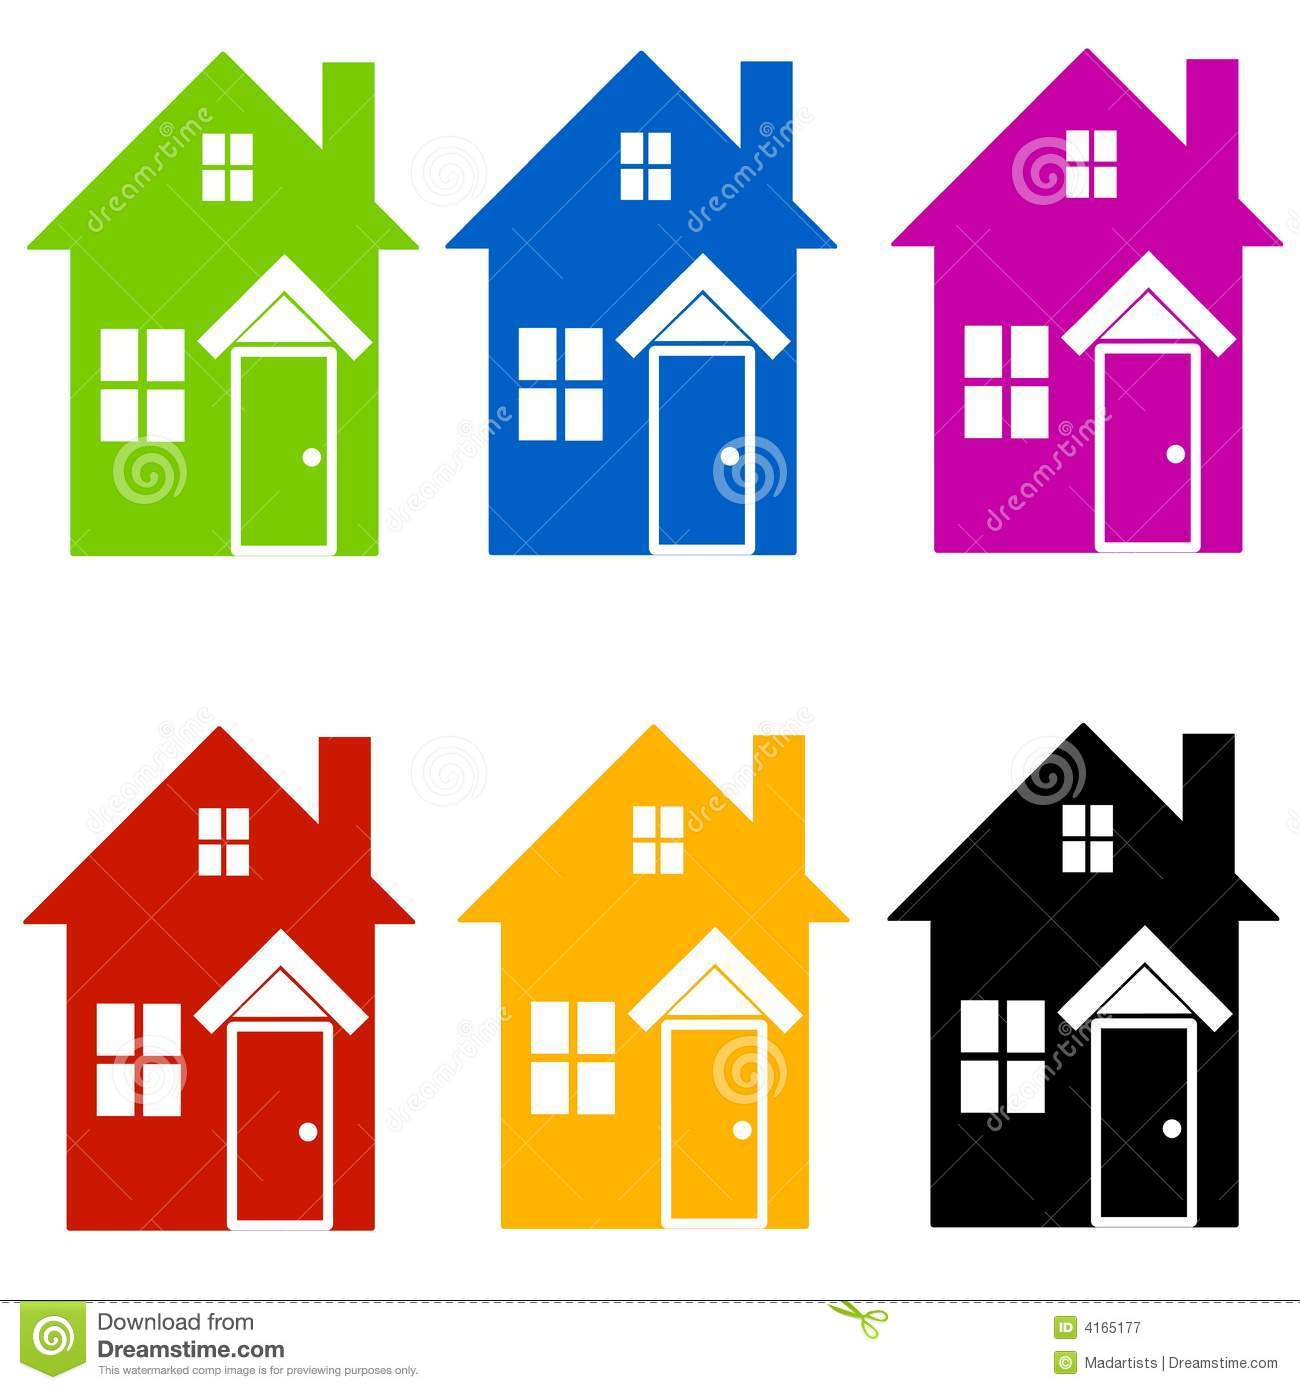 House color clipart.